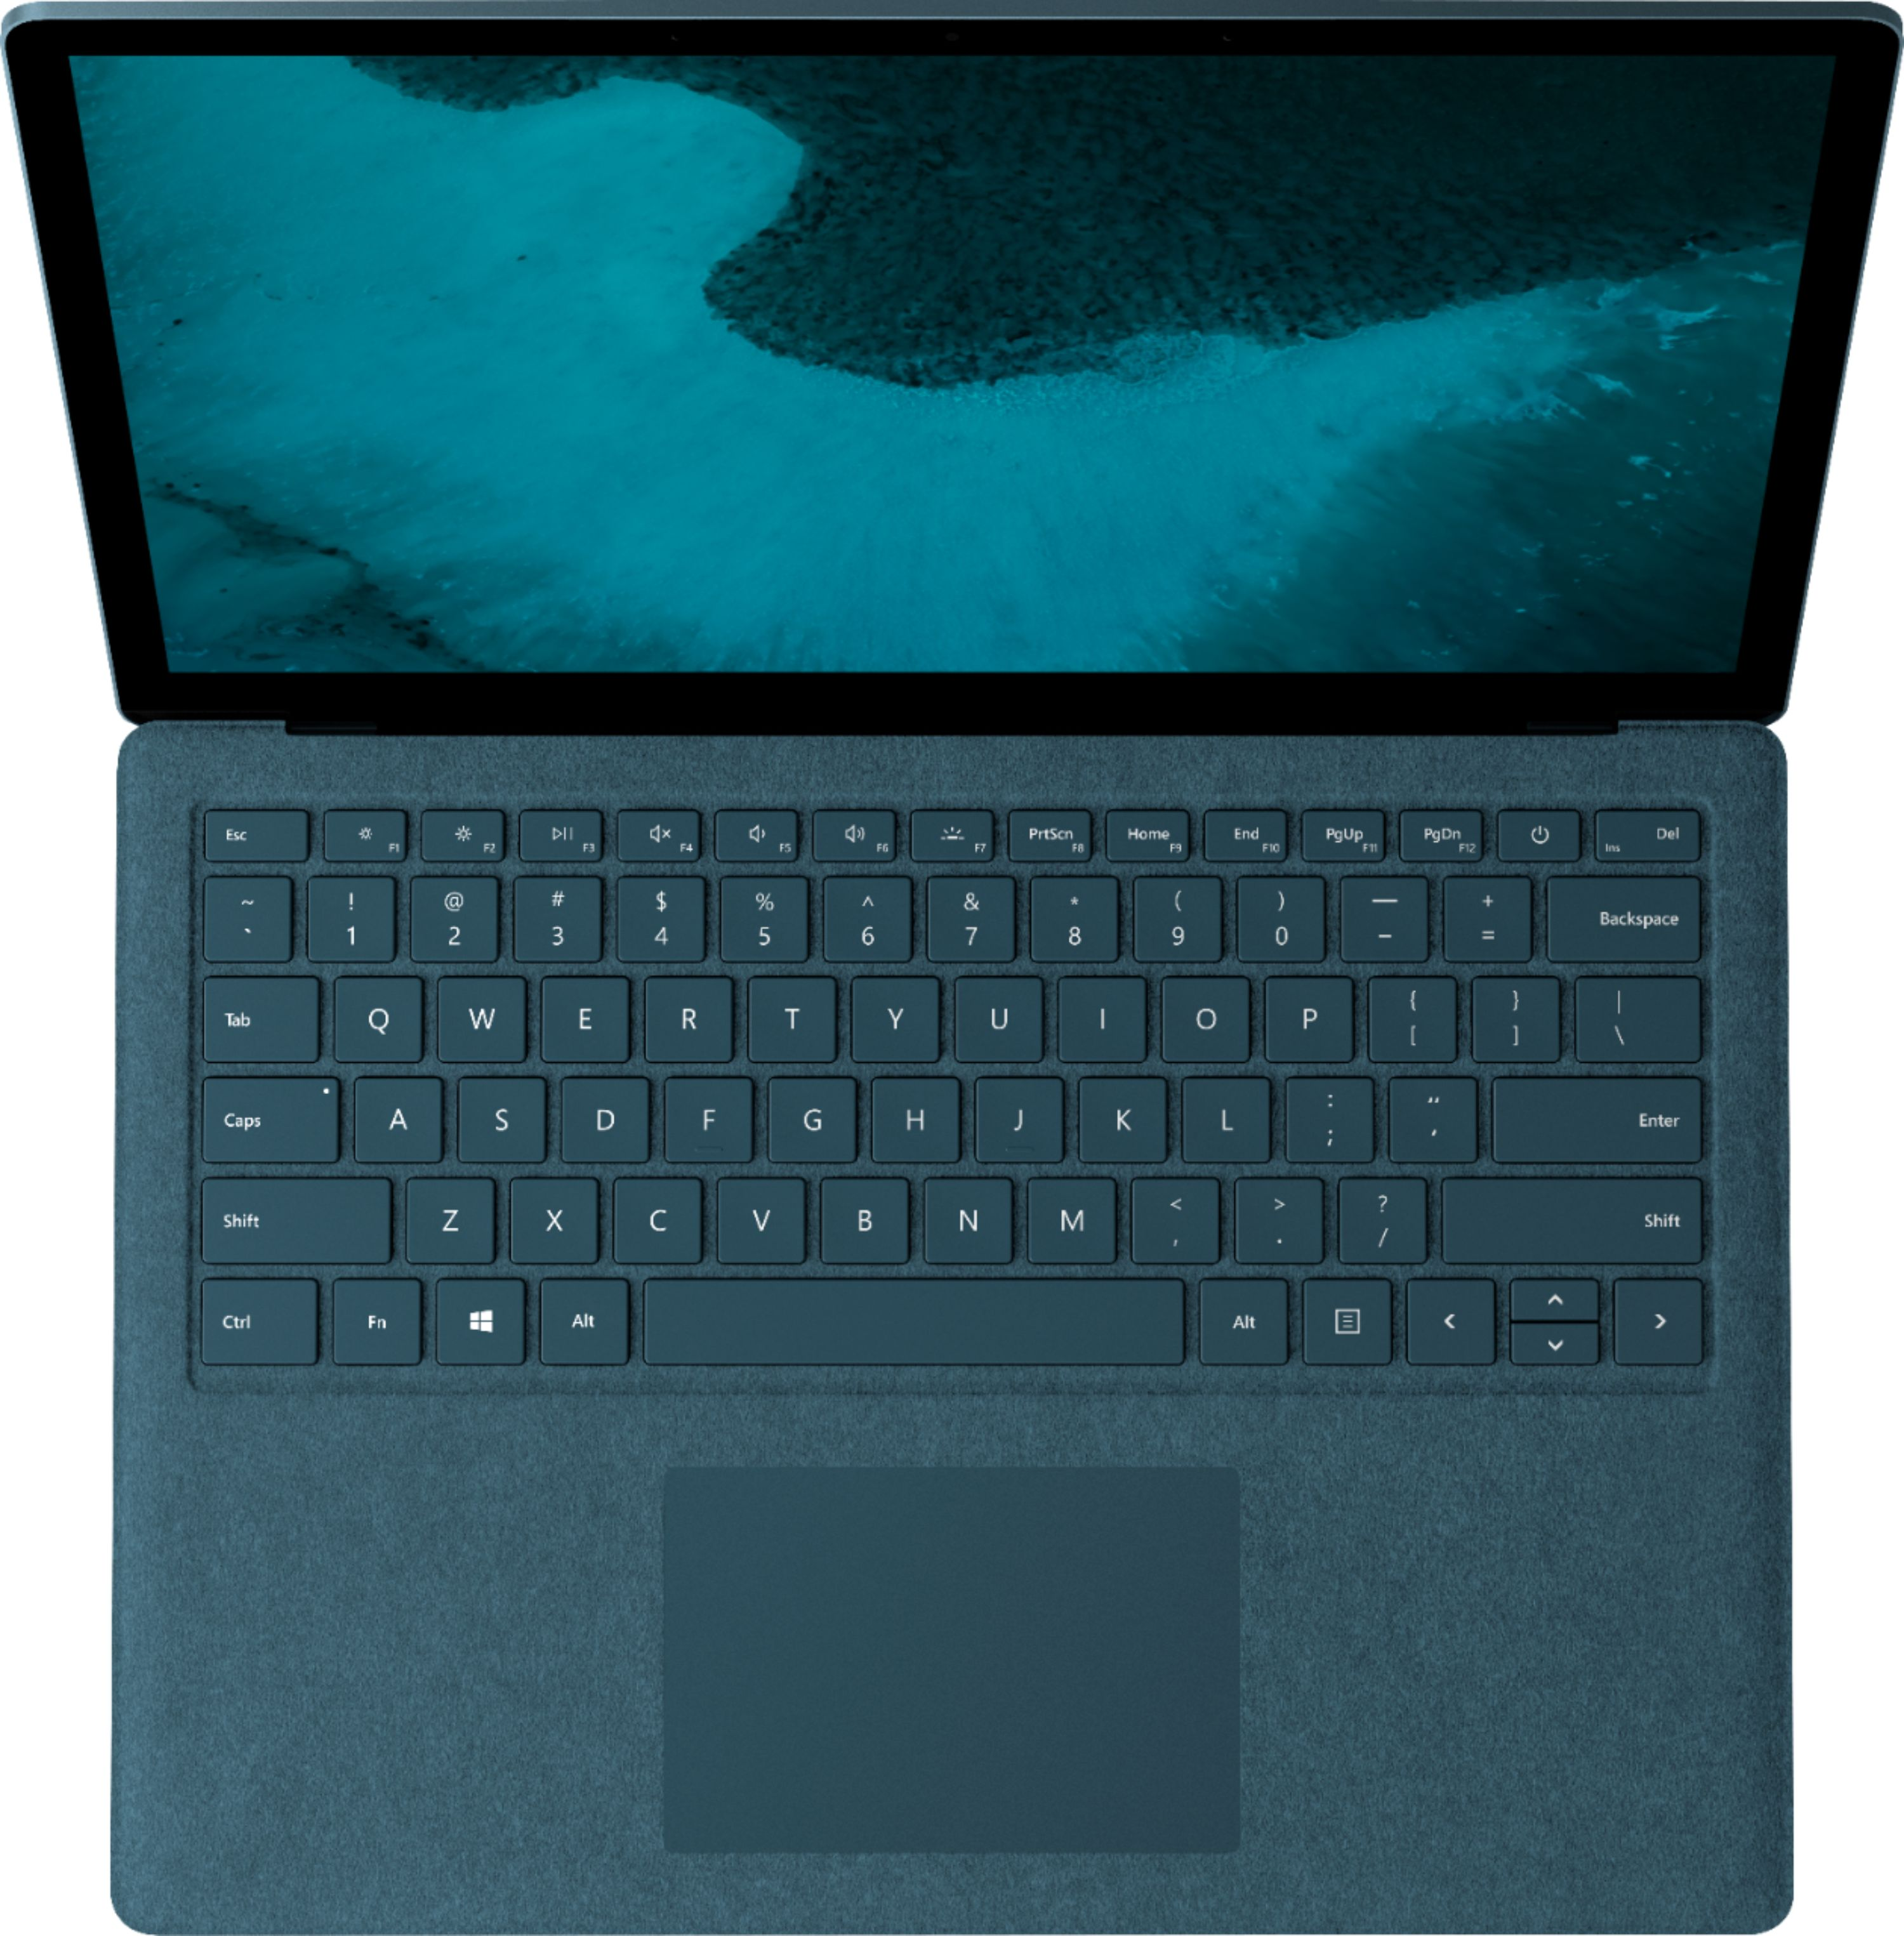 """Alt View Zoom 14. Microsoft - Geek Squad Certified Refurbished Surface Laptop 2 - 13.5"""" Touch Screen - Intel Core i5 - 8GB - 256GB SSD - Cobalt Blue."""